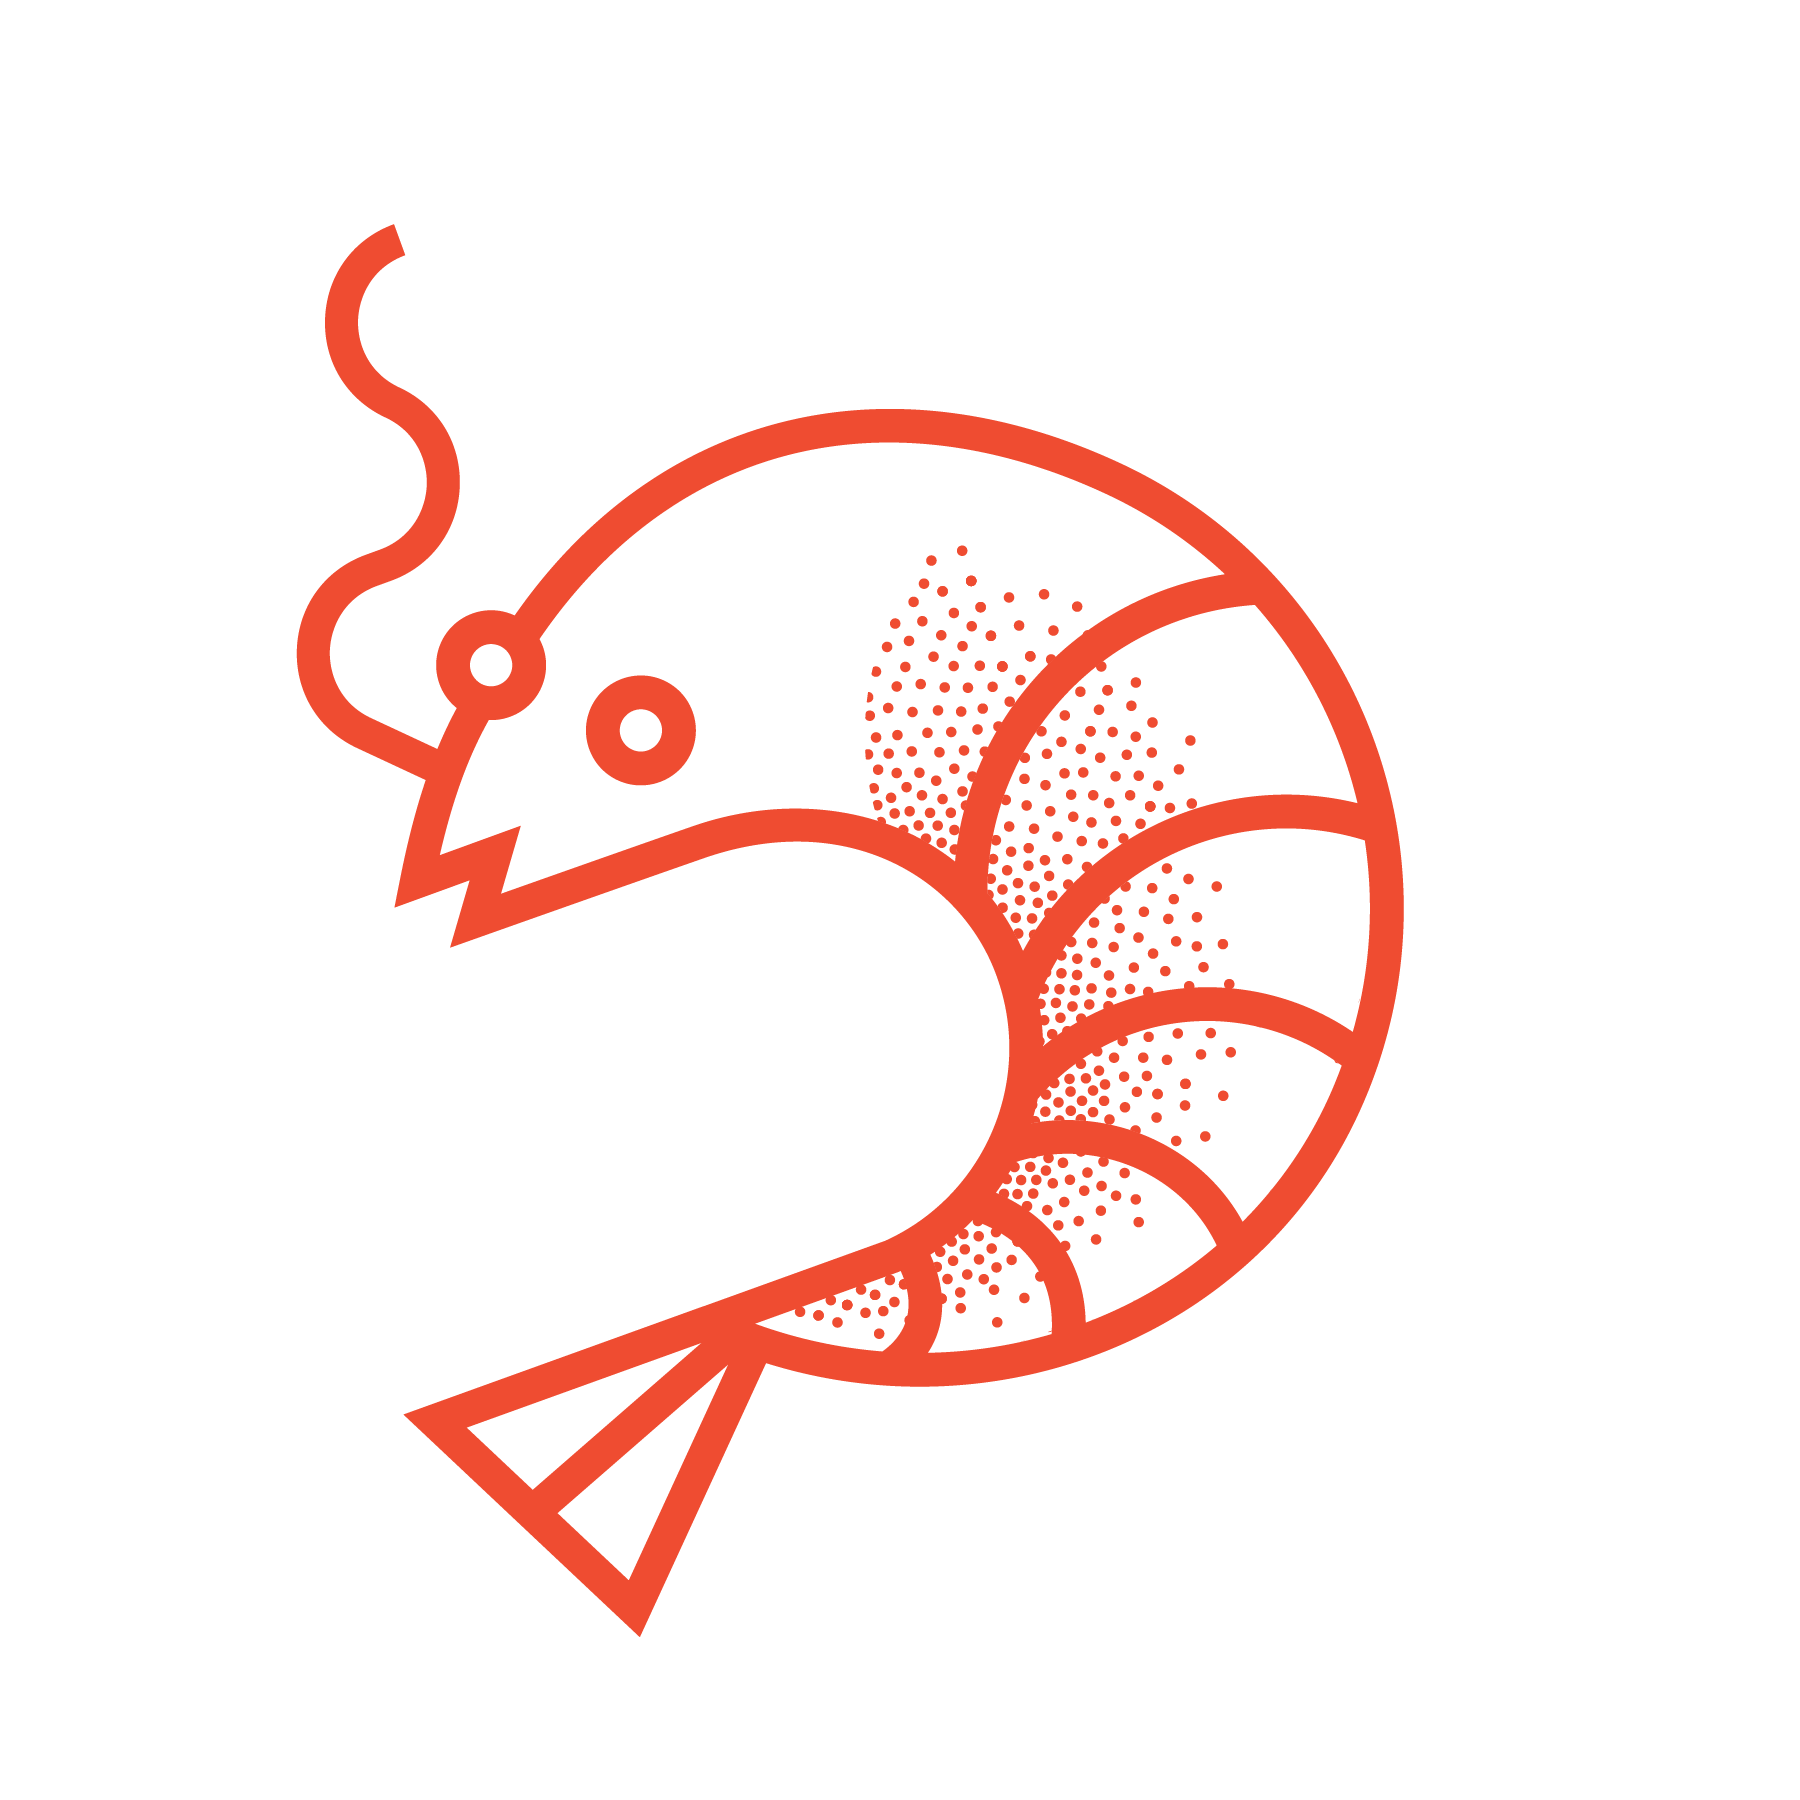 Final_Shrimp_Centered-01.png